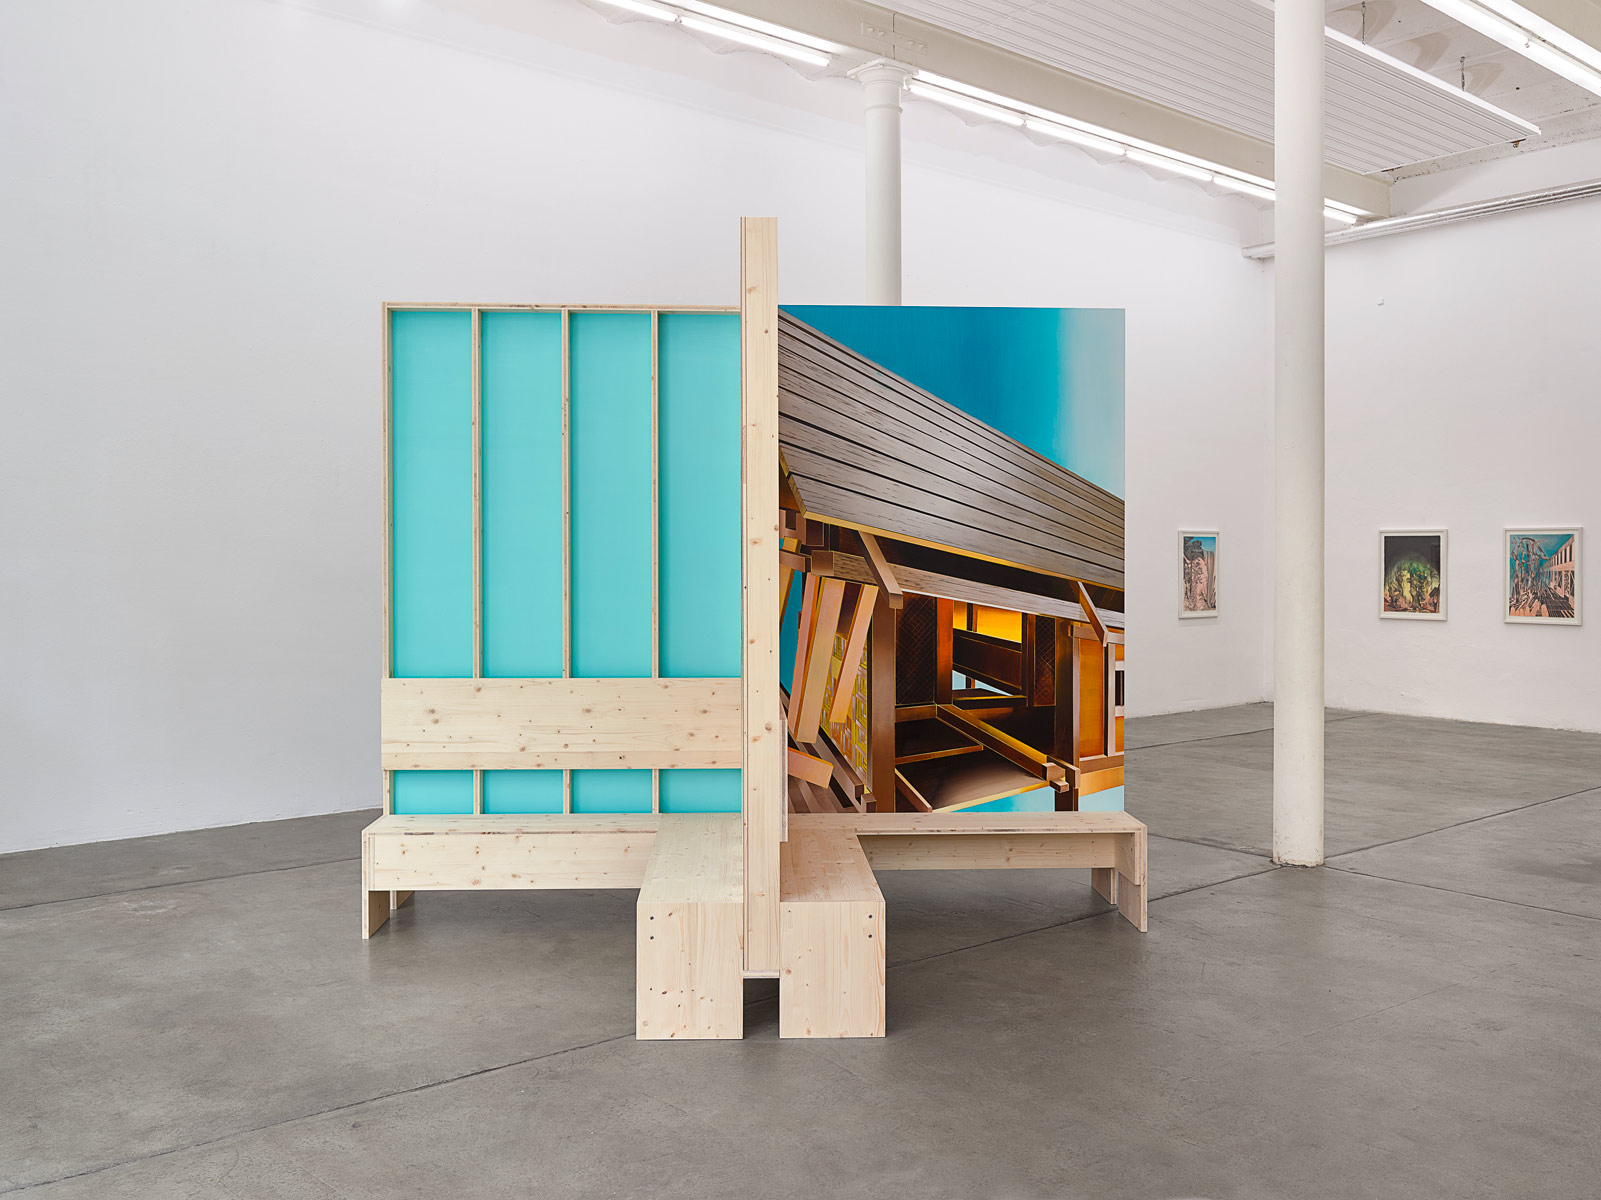 BENCH, 2015<br>Construction: Laminated wood/Painting: Acrylic on mdf<br>270x329x329cm